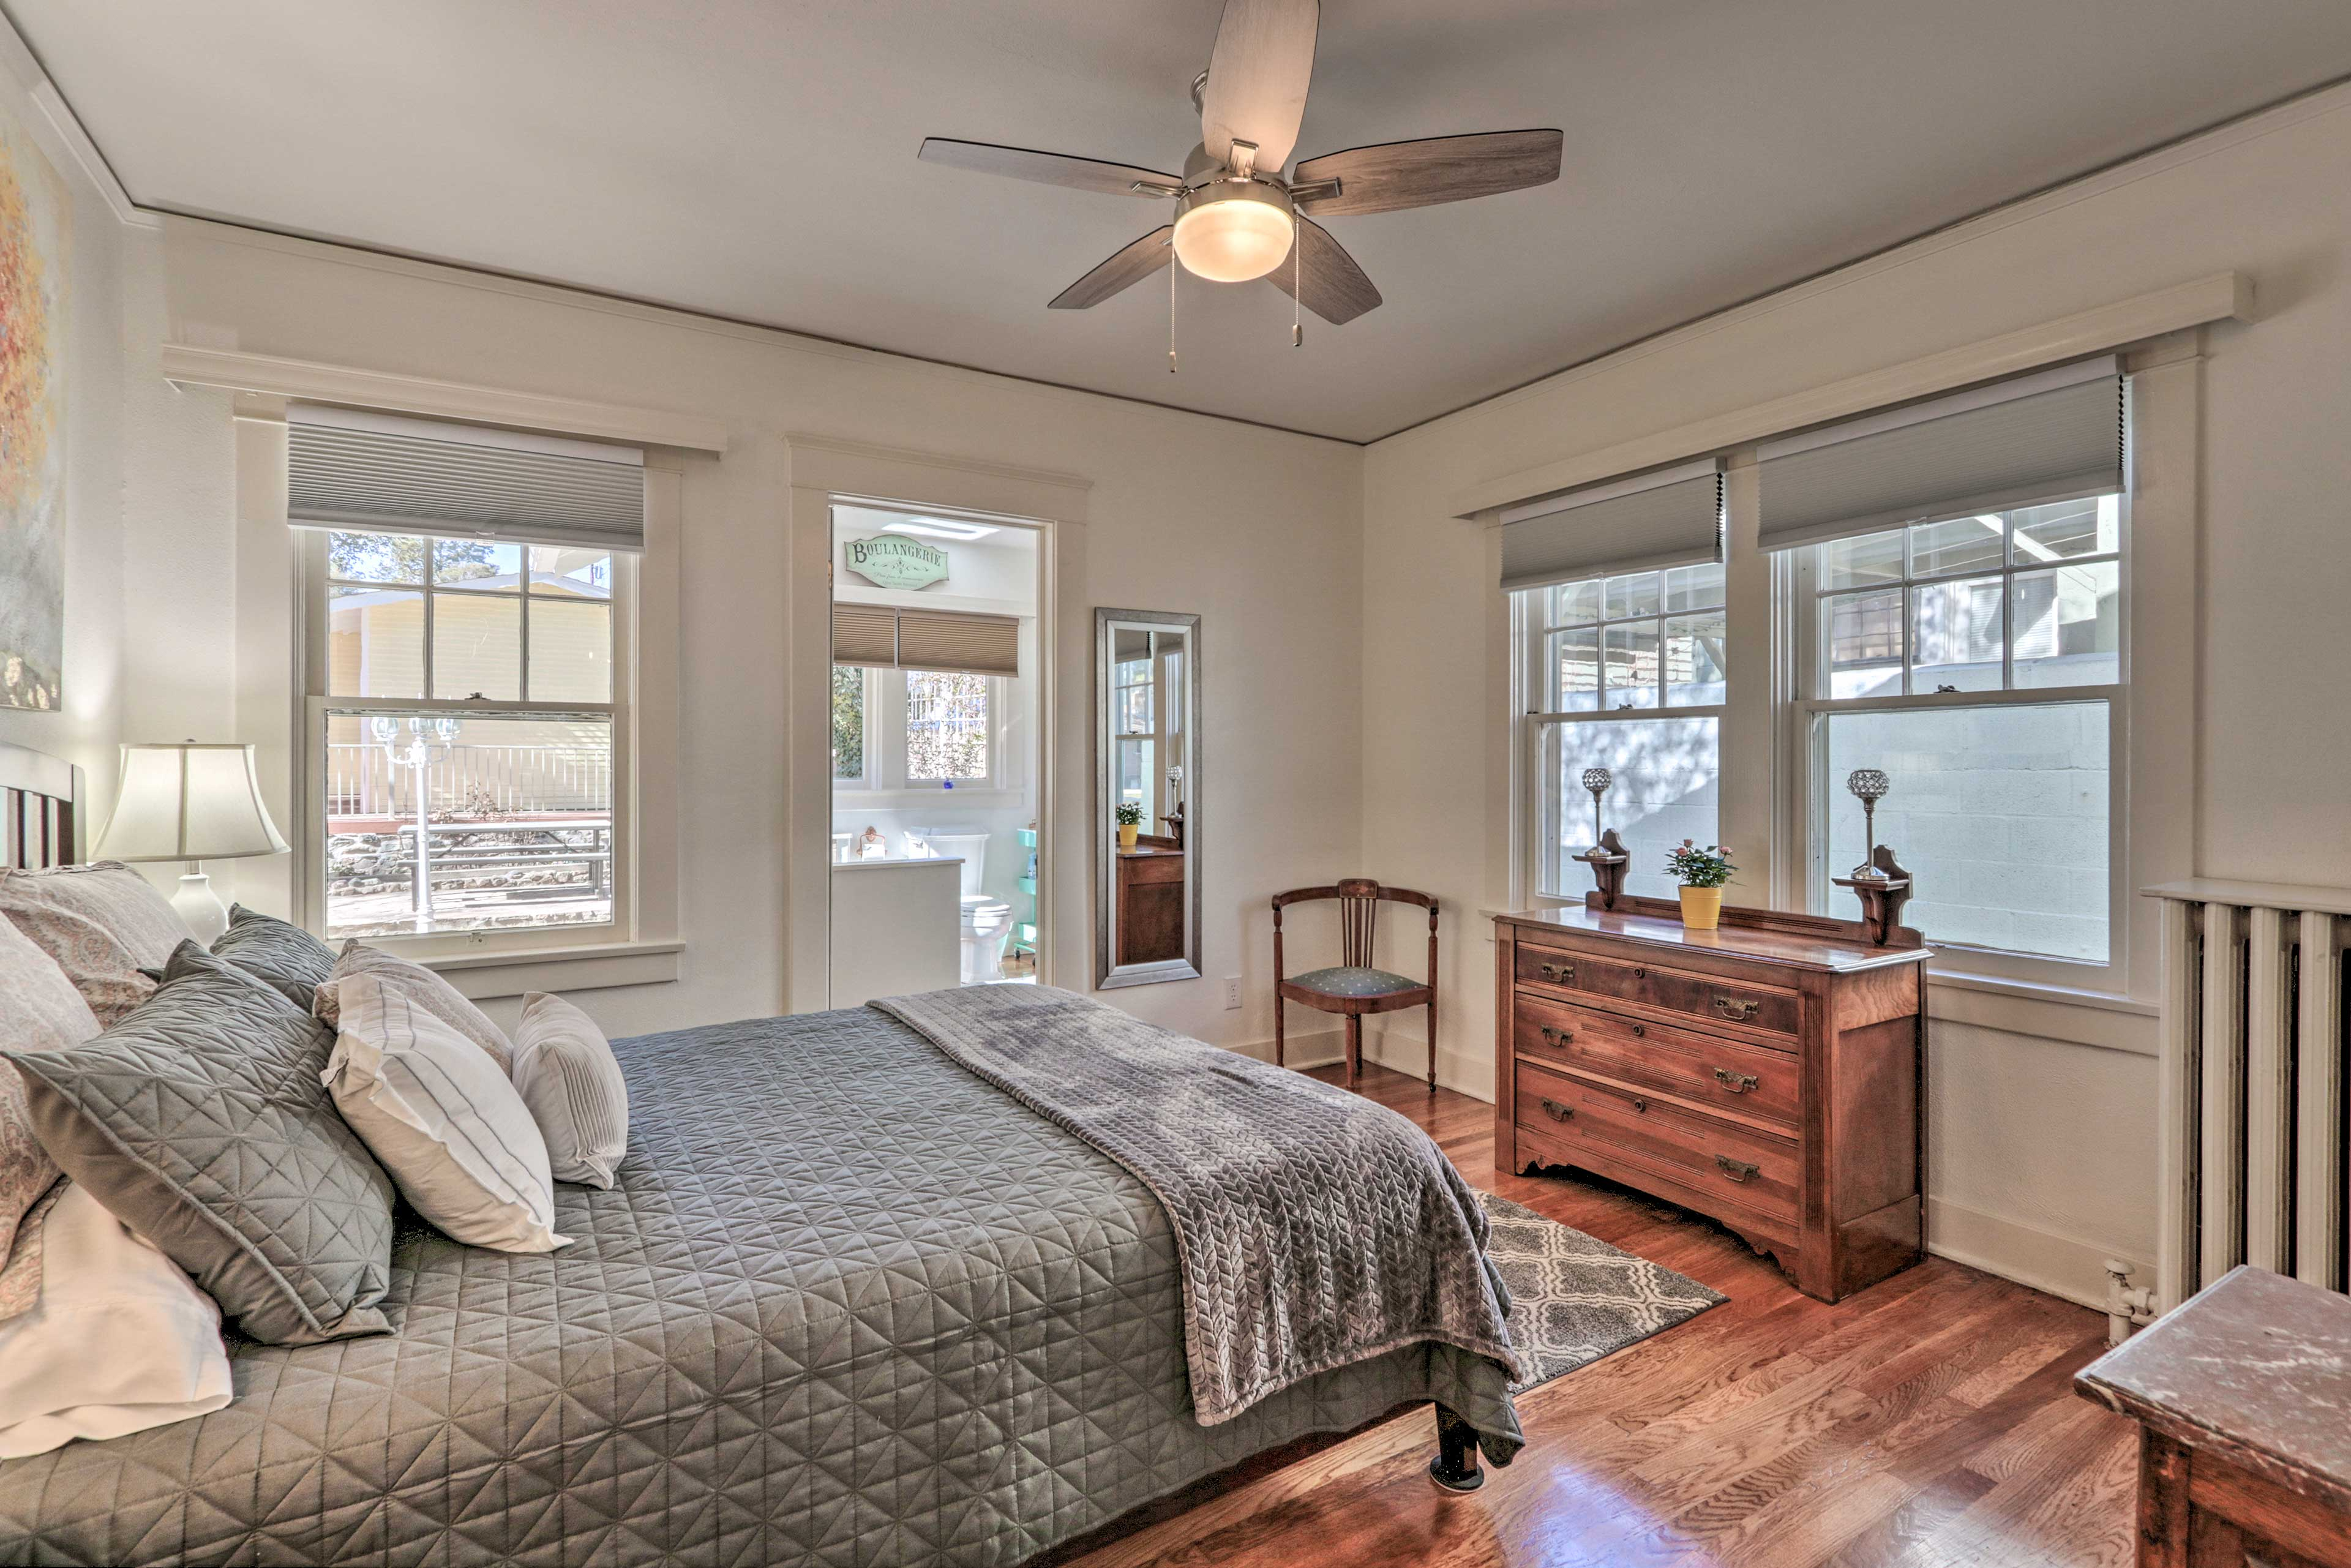 Rise and shine to ample natural sunlight entering this window-lined room.